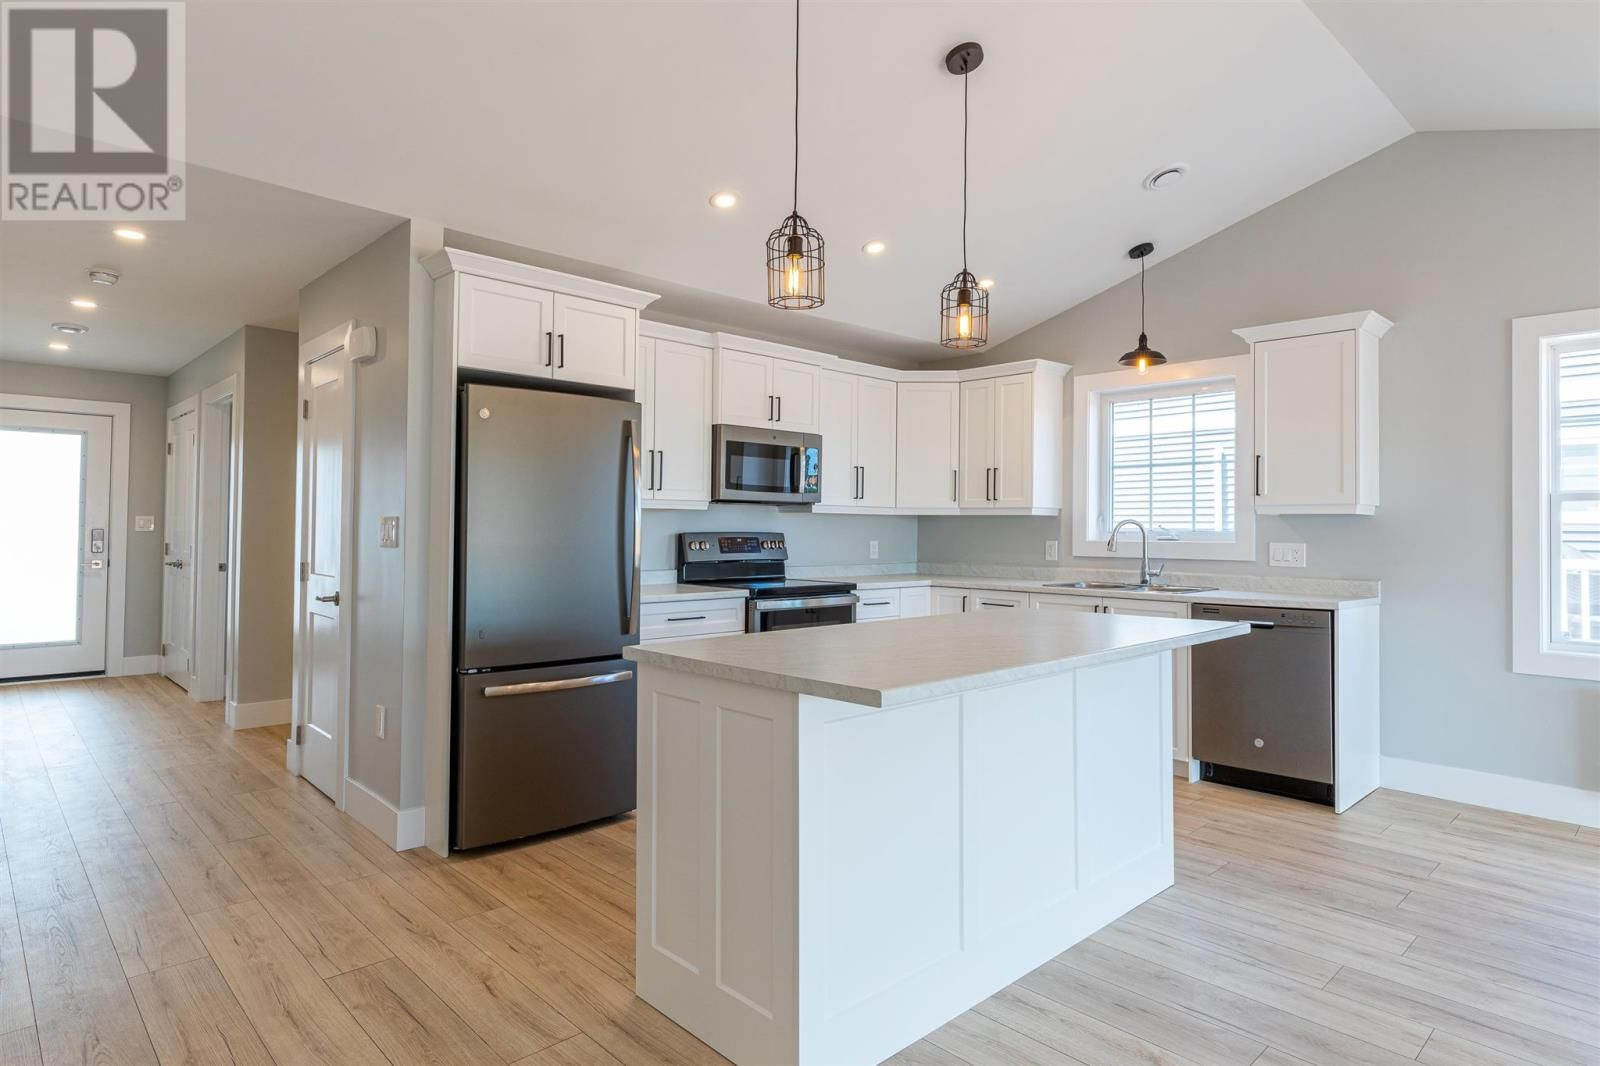 Main Photo: 142 Putter Street in Summerside: House for sale : MLS®# 202120694